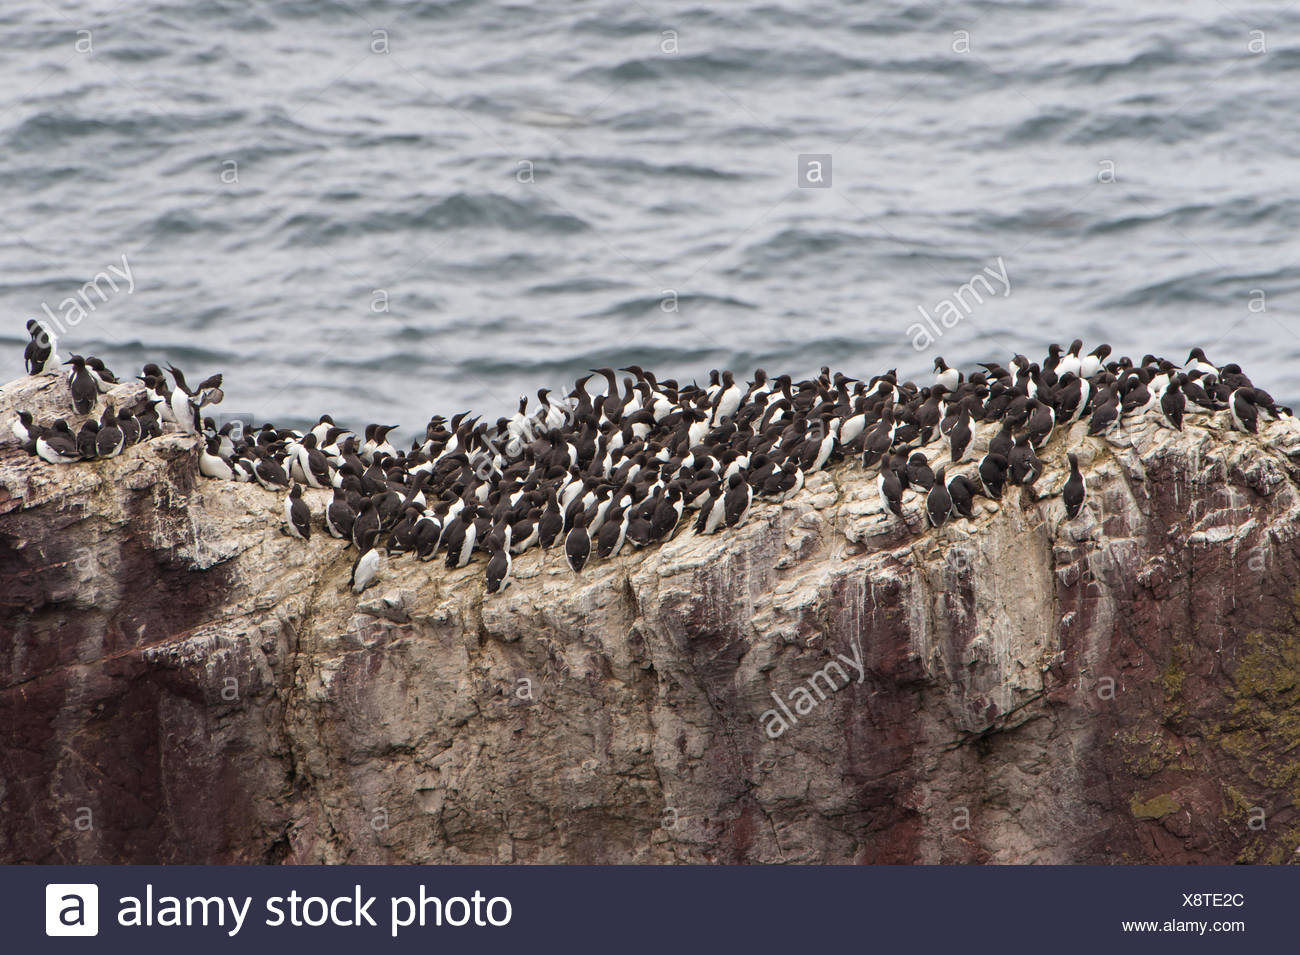 Colony of Common Murres or Common Guillemots (Uria aalge) nesting on a cliff, Dunbar, Scotland, United Kingdom Stock Photo